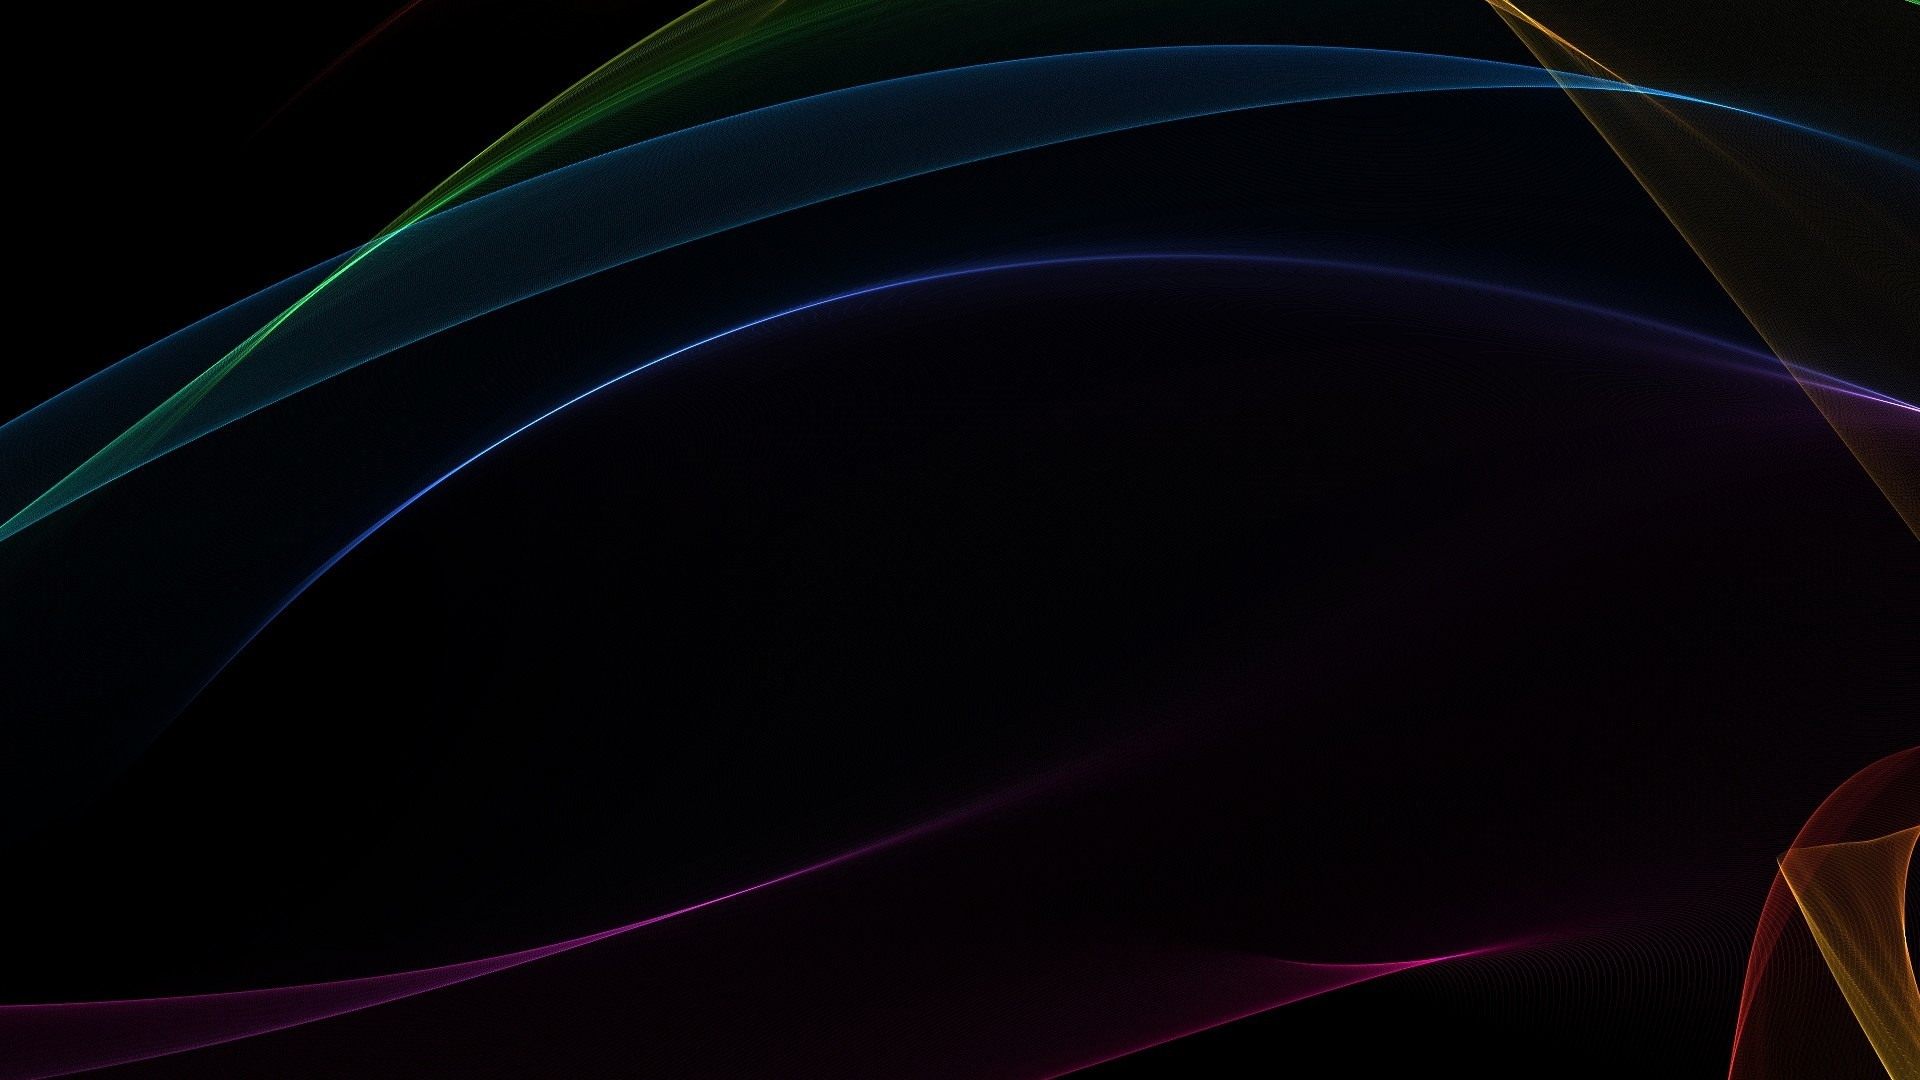 abstract black minimalistic waves HD Wallpaper